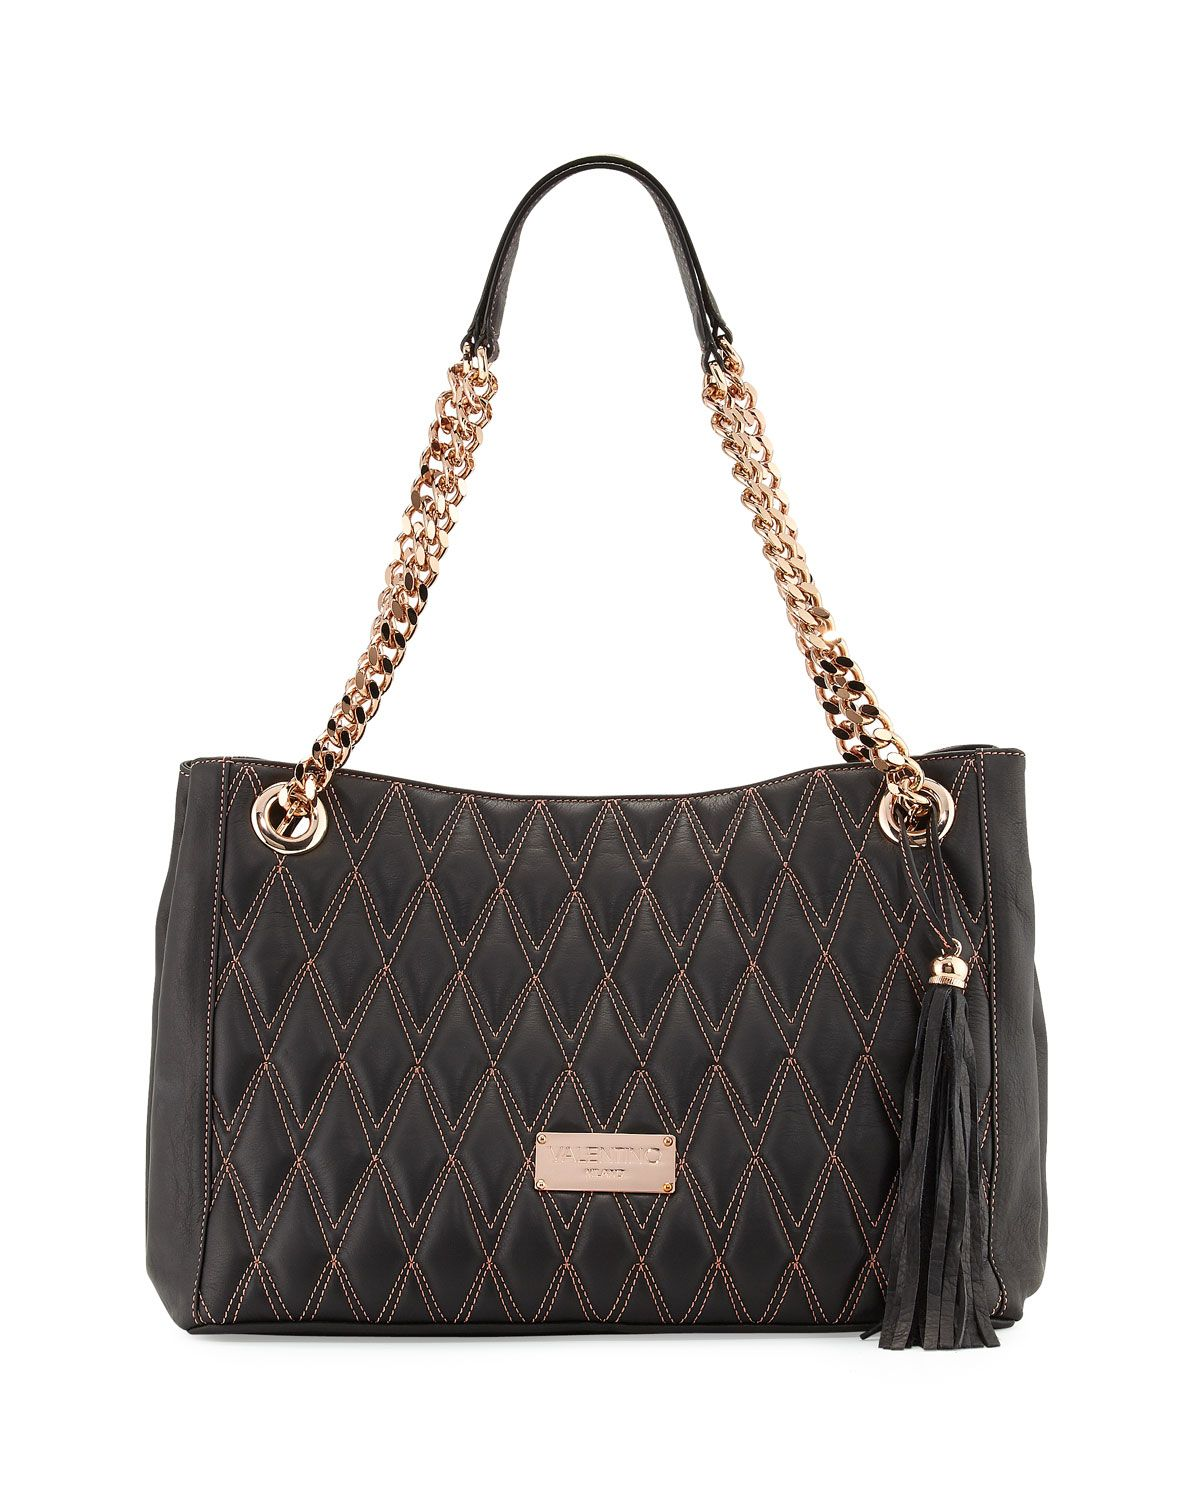 07fe9c21b7fa Verra D Quilted Leather Tote Bag Black in 2019 | *Last Call* | Bags ...